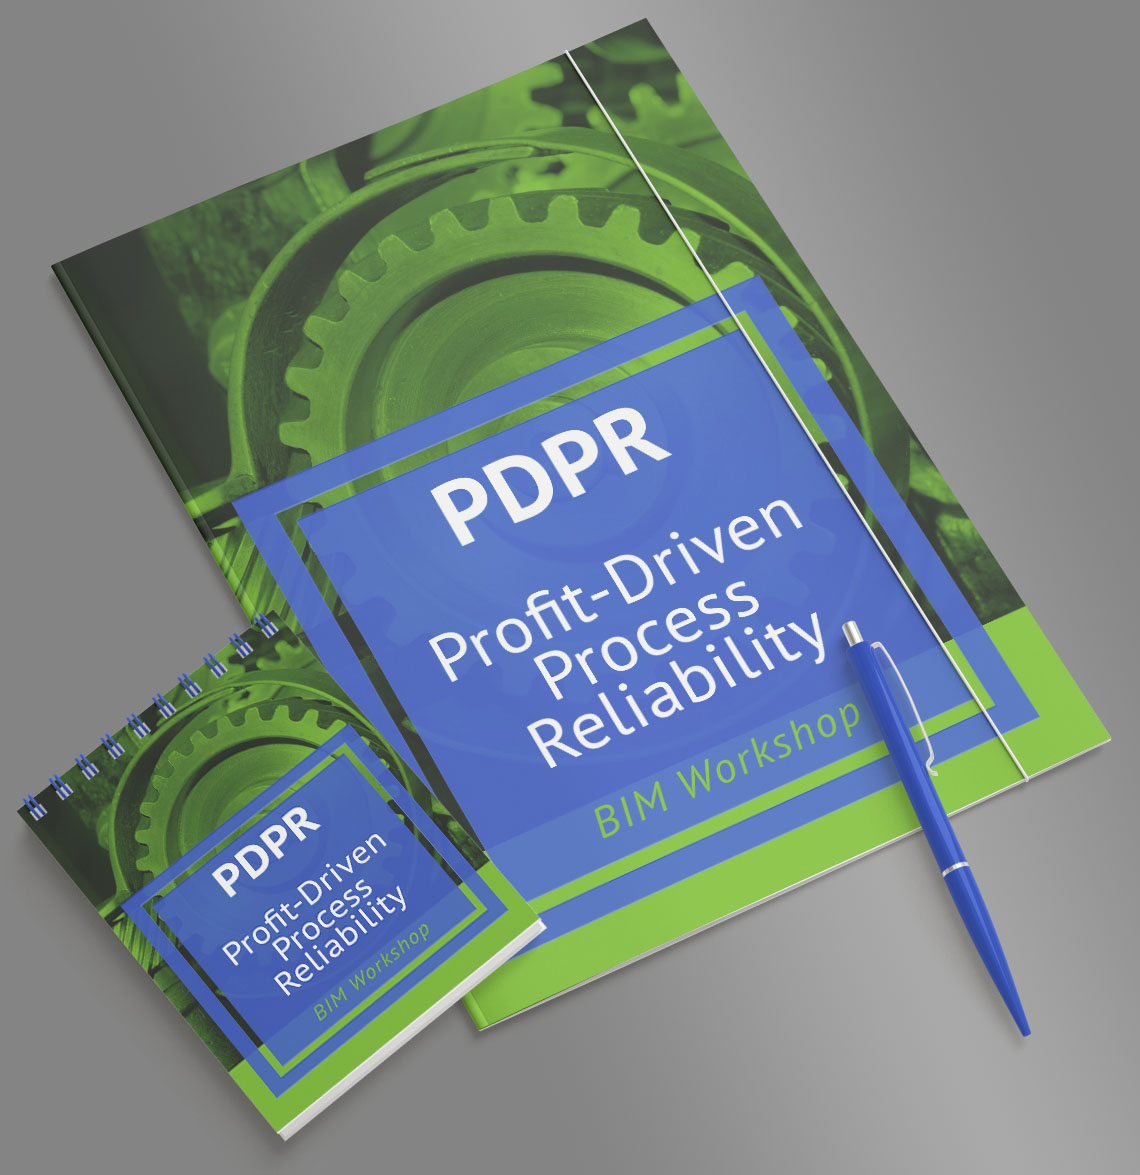 PDPR Workshop